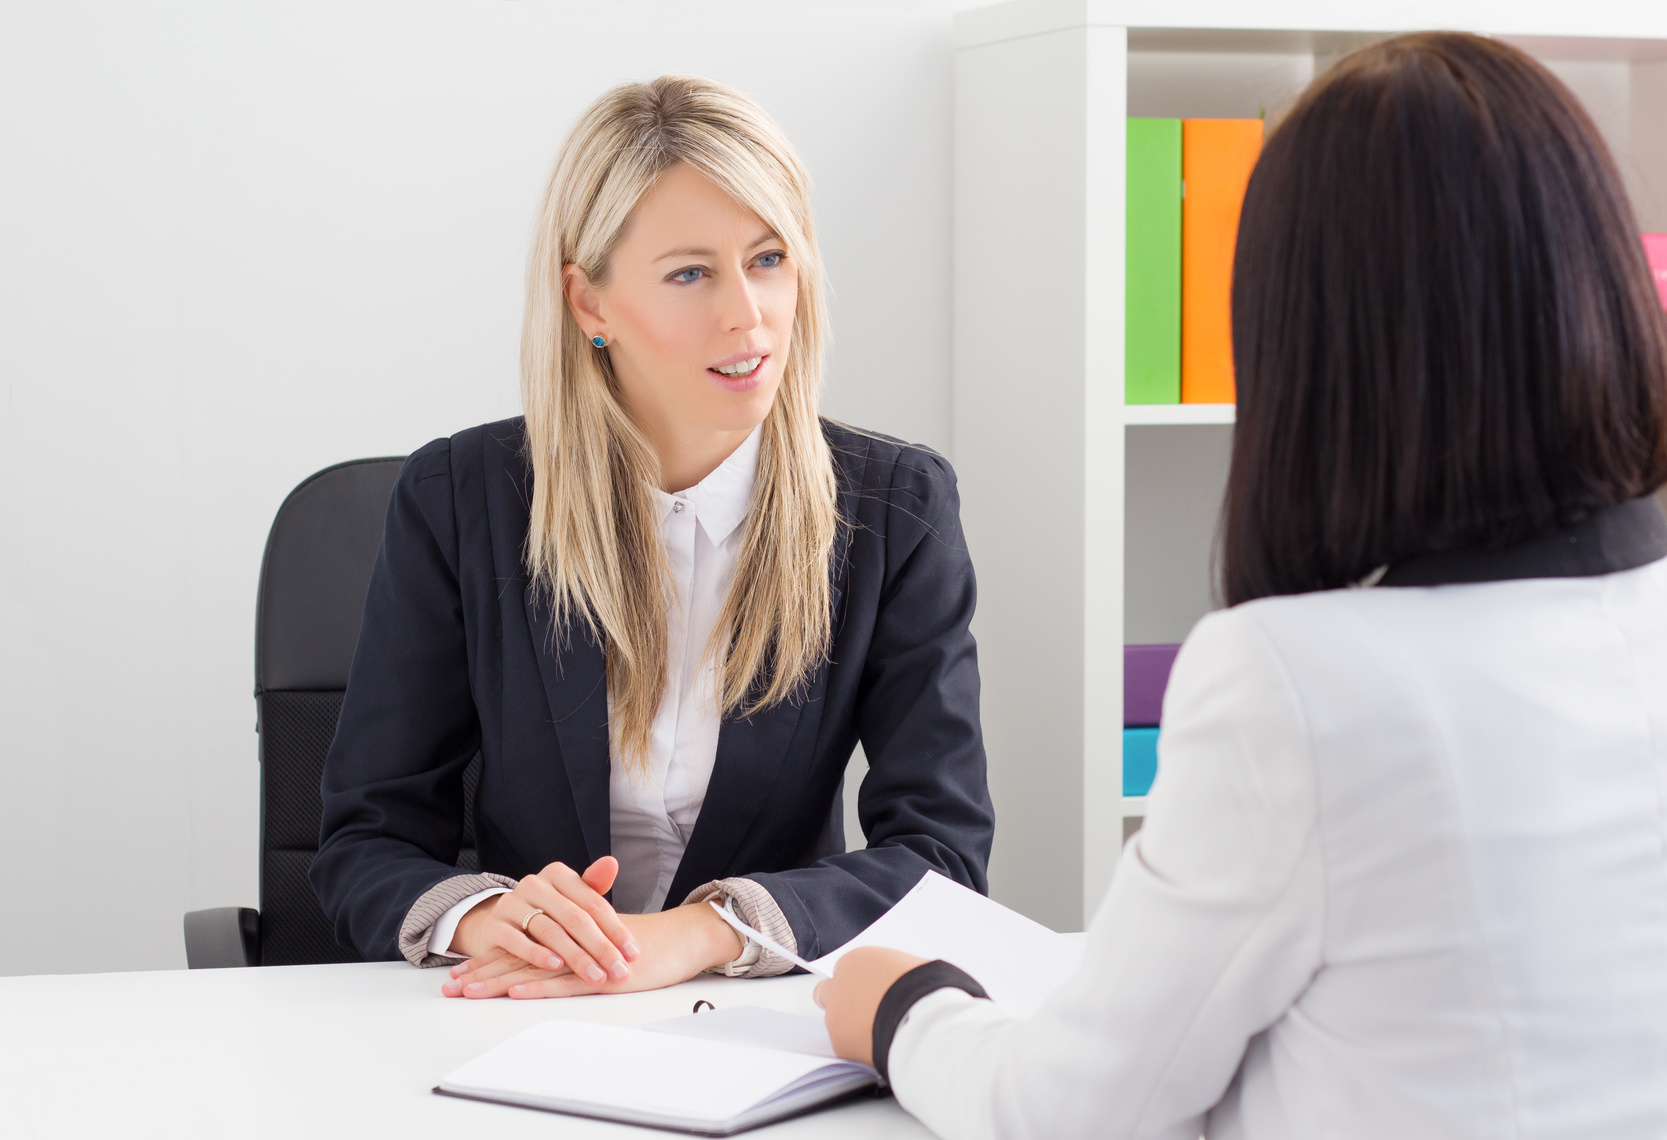 sample interview questions and answers for nursing assistant sample interview questions and answers for nursing assistant certified nursing assistant interview questions and answers interview